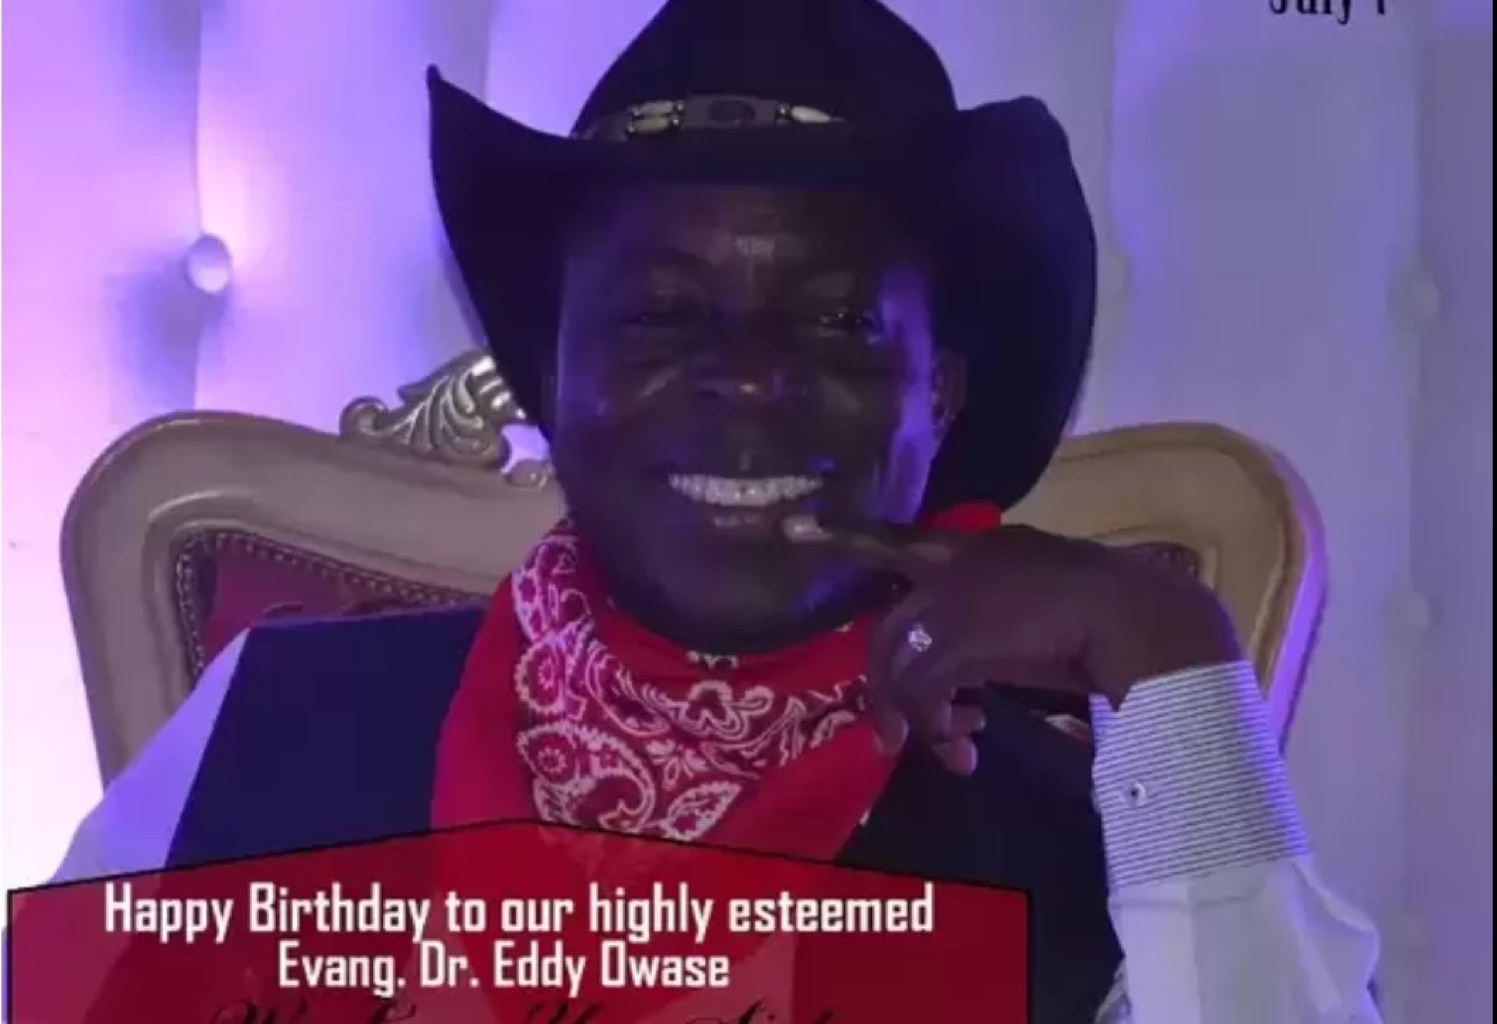 Happy Bday Highly Esteemed Evang